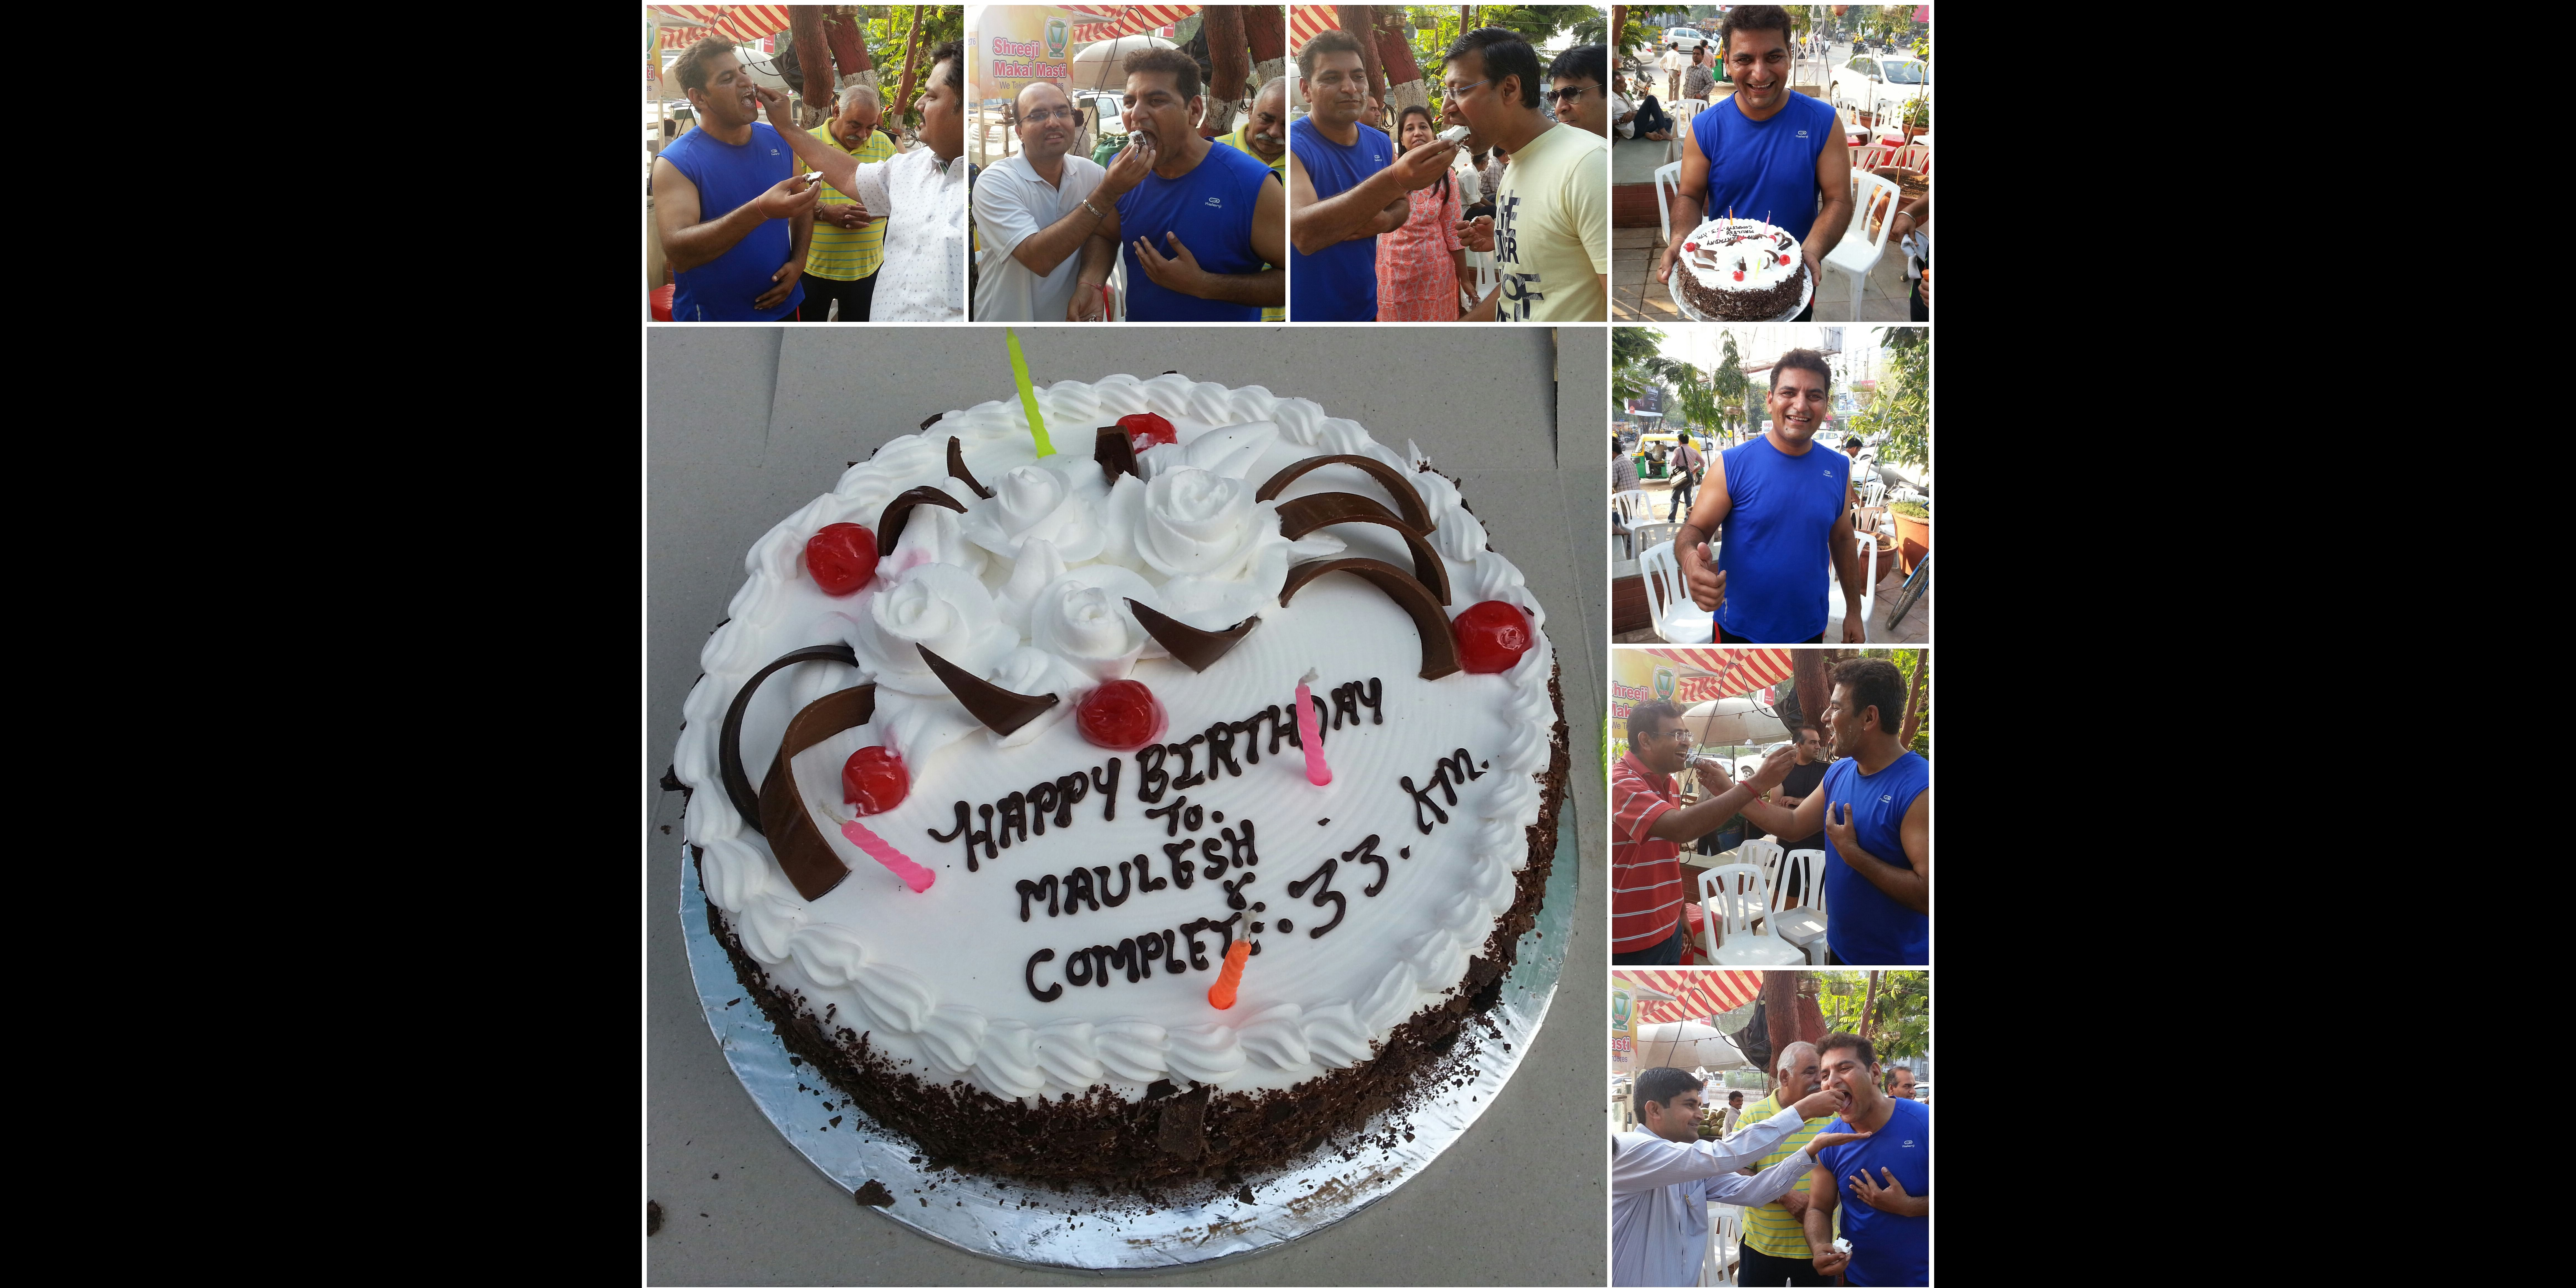 A Unique Celebration for Mr. Maulesh who completed 33 km running on his 33rd Birthday